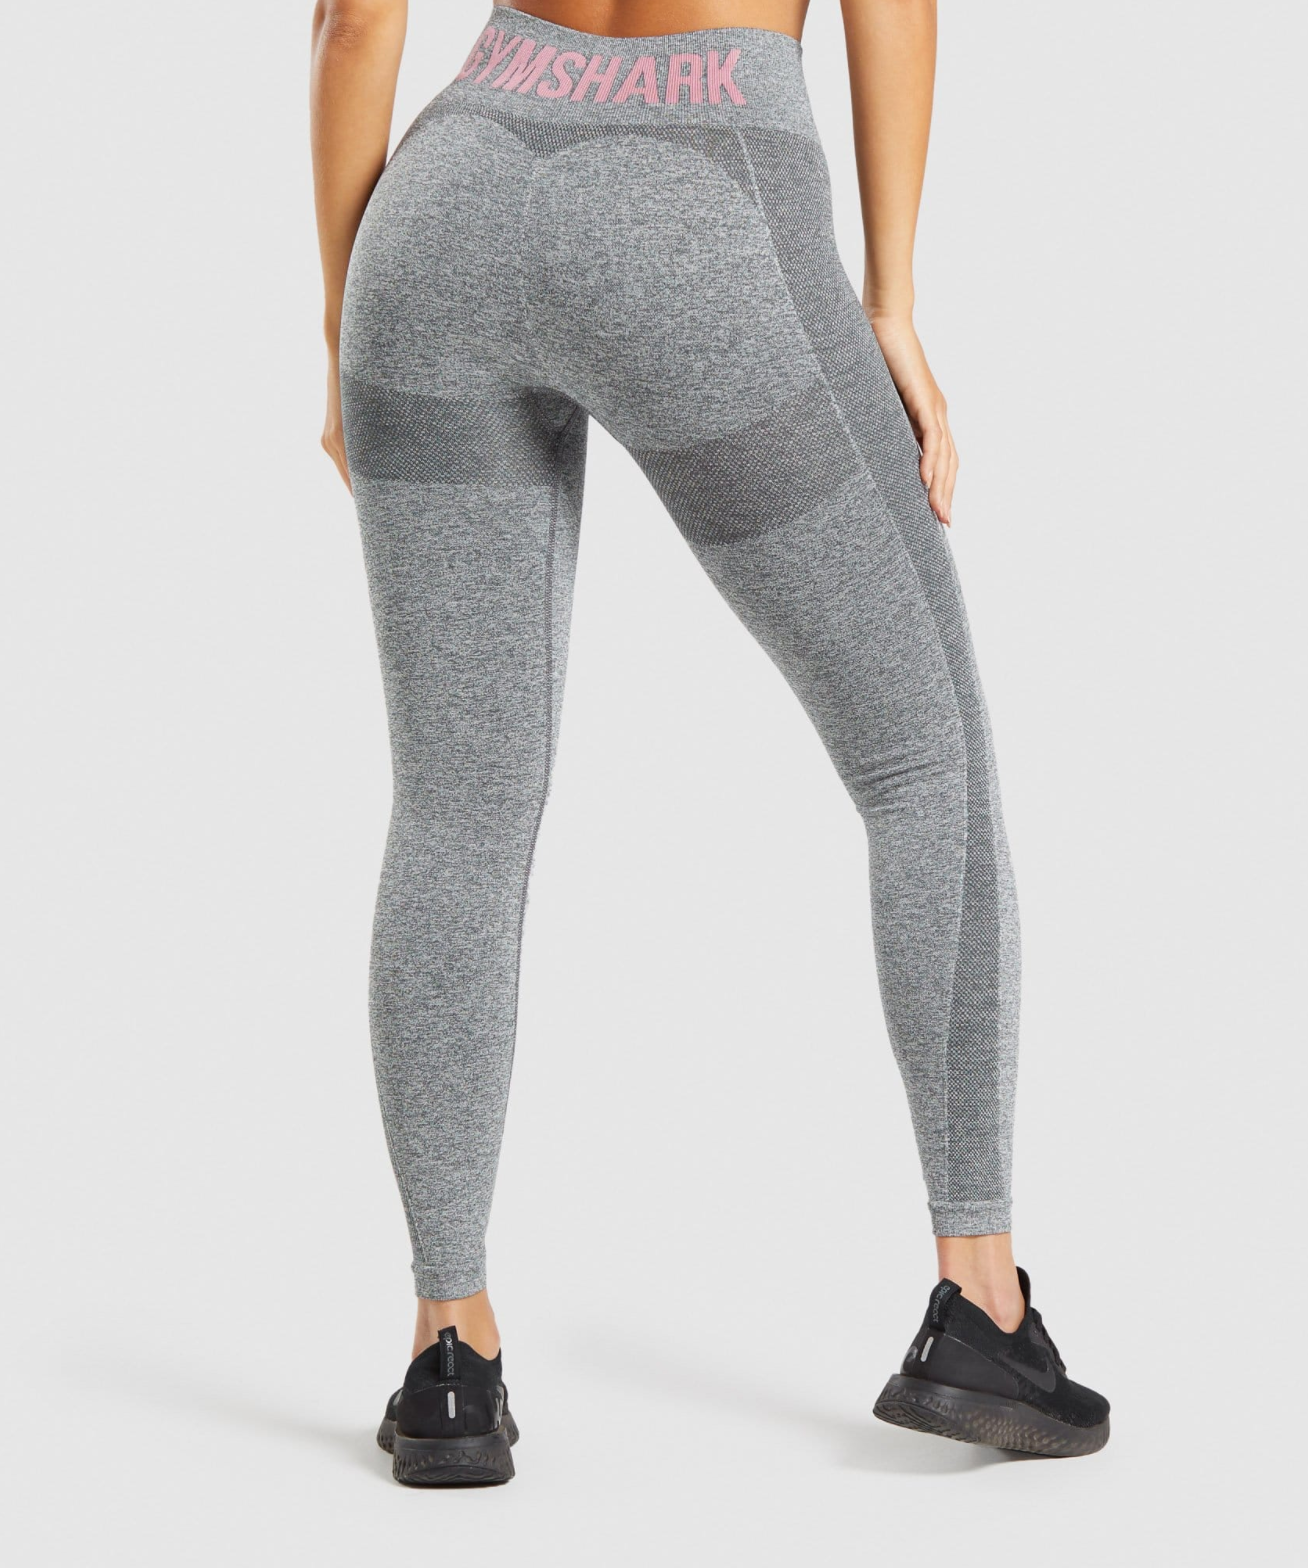 Flex High Waisted Leggings in Charcoal Grey/Ruby Pink